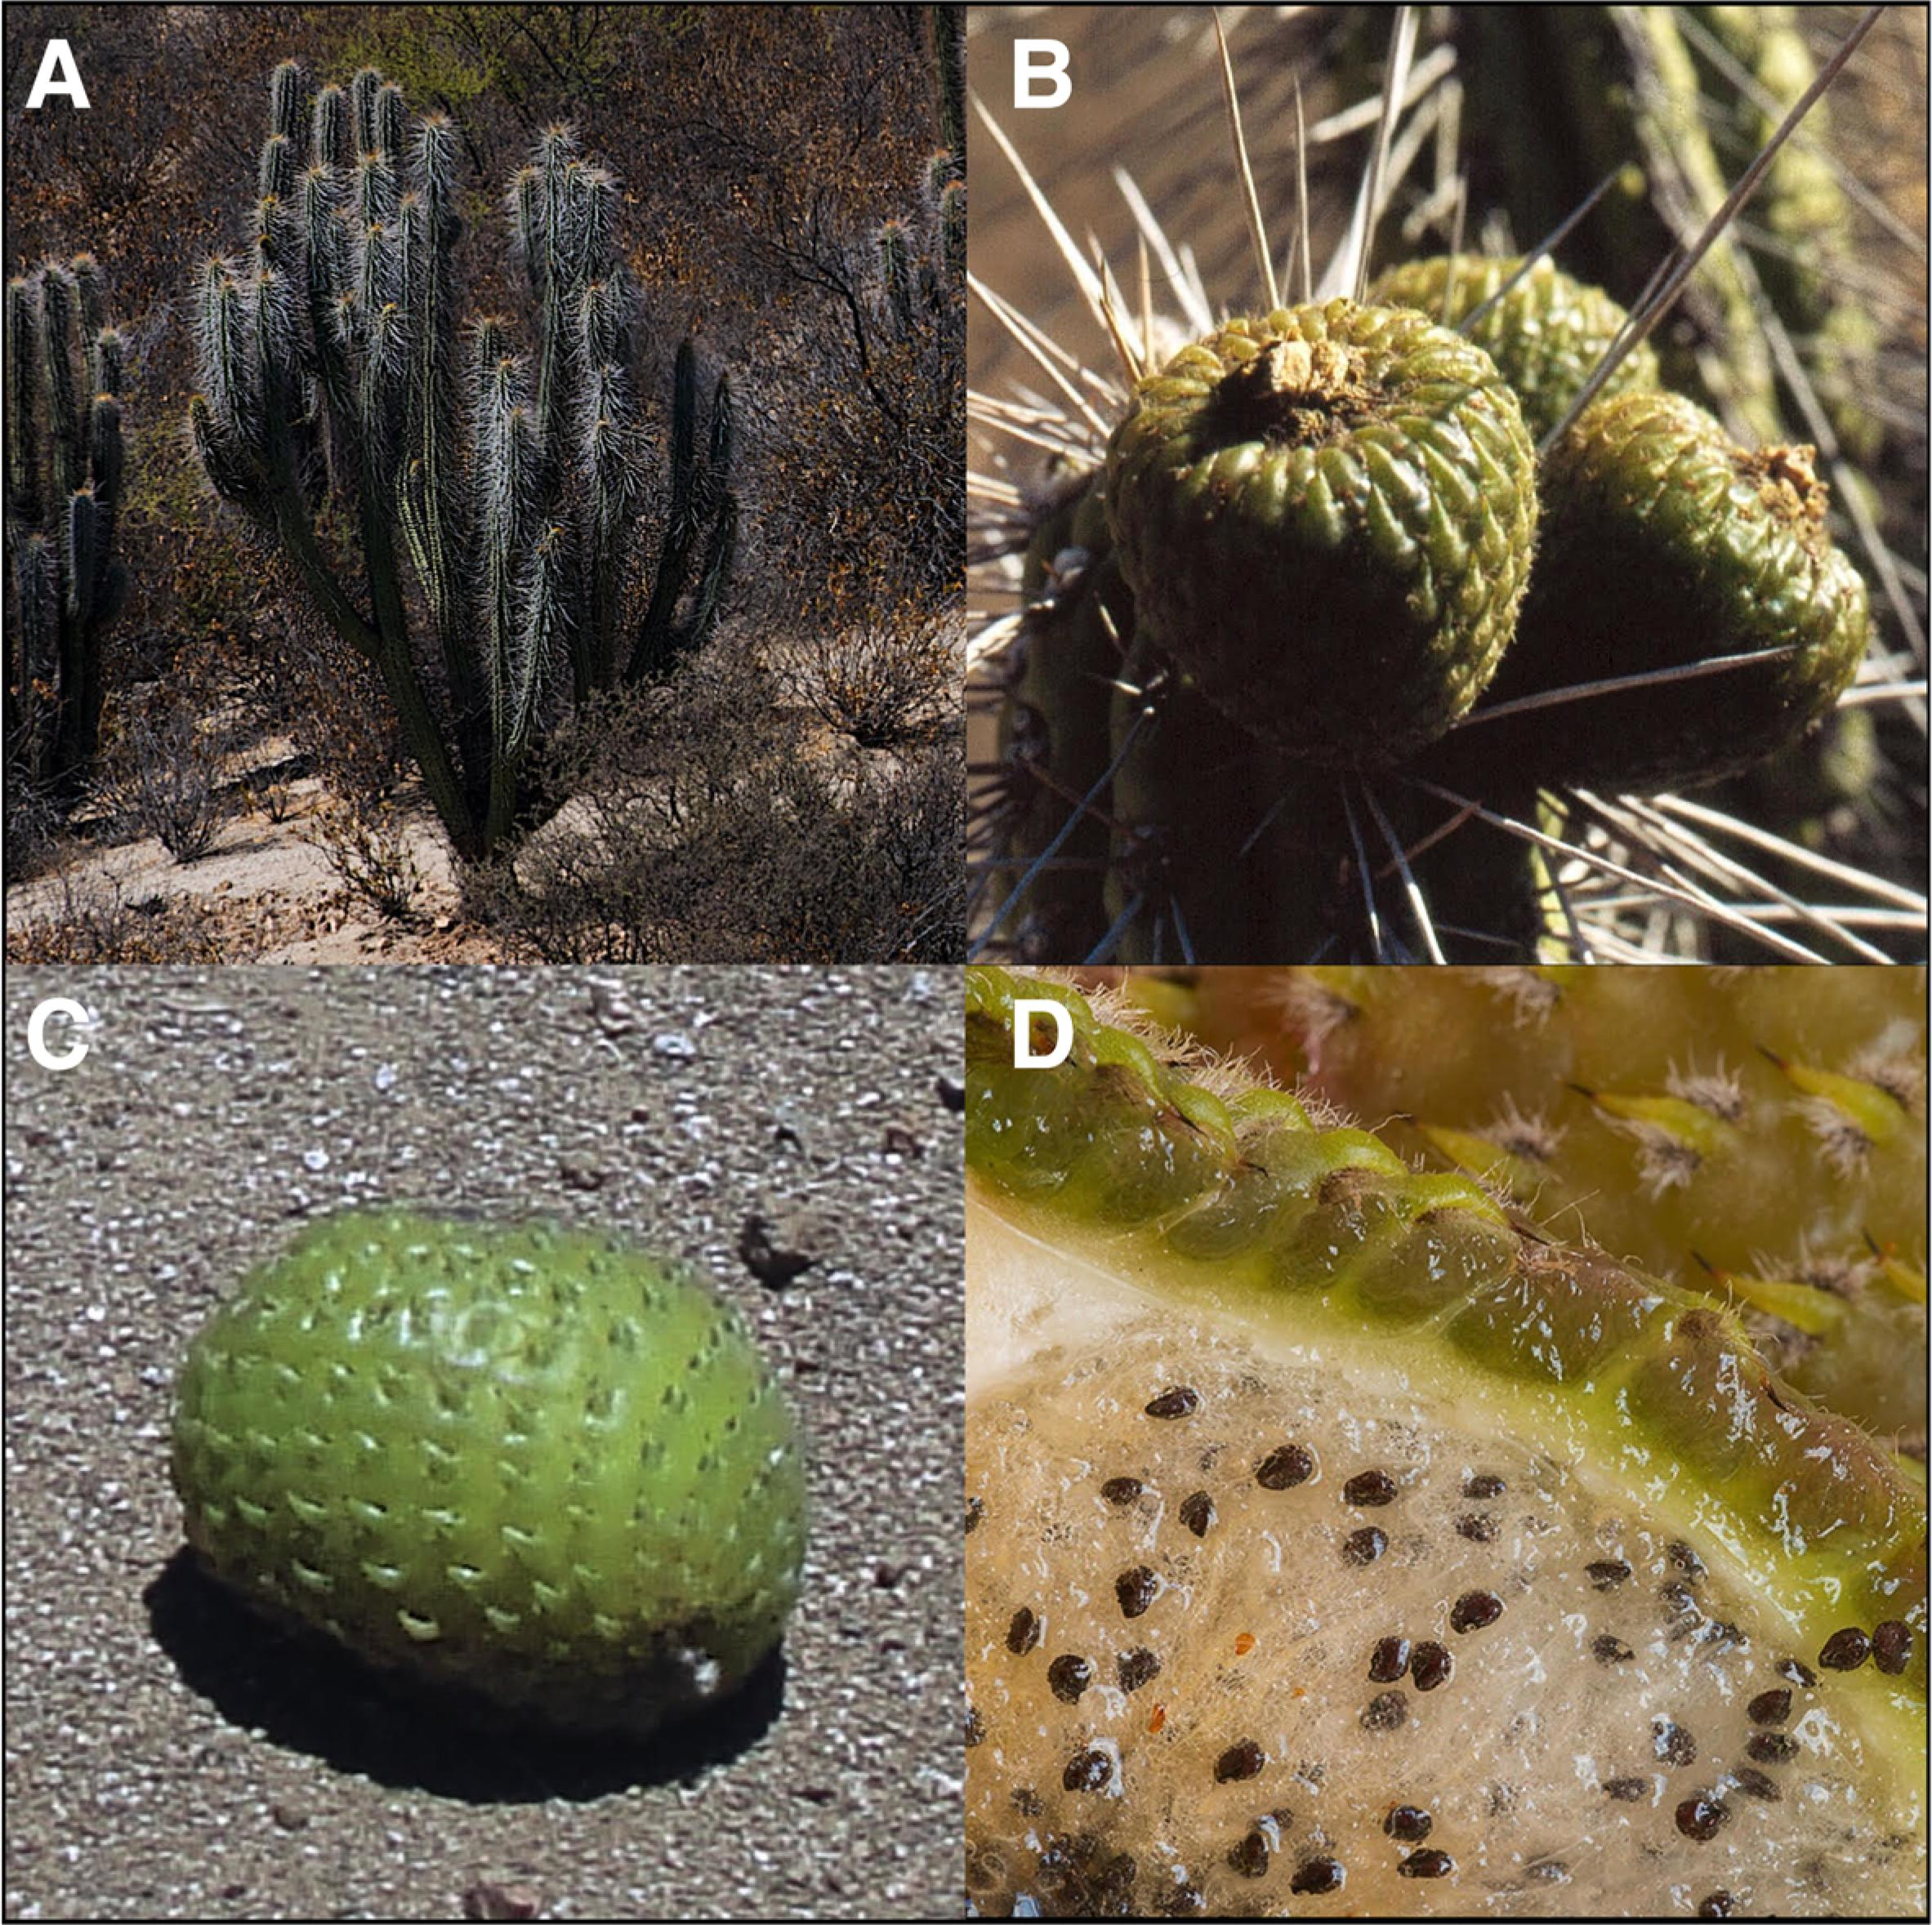 Frugivory and seed dispersal in the endemic cactus Eulychnia